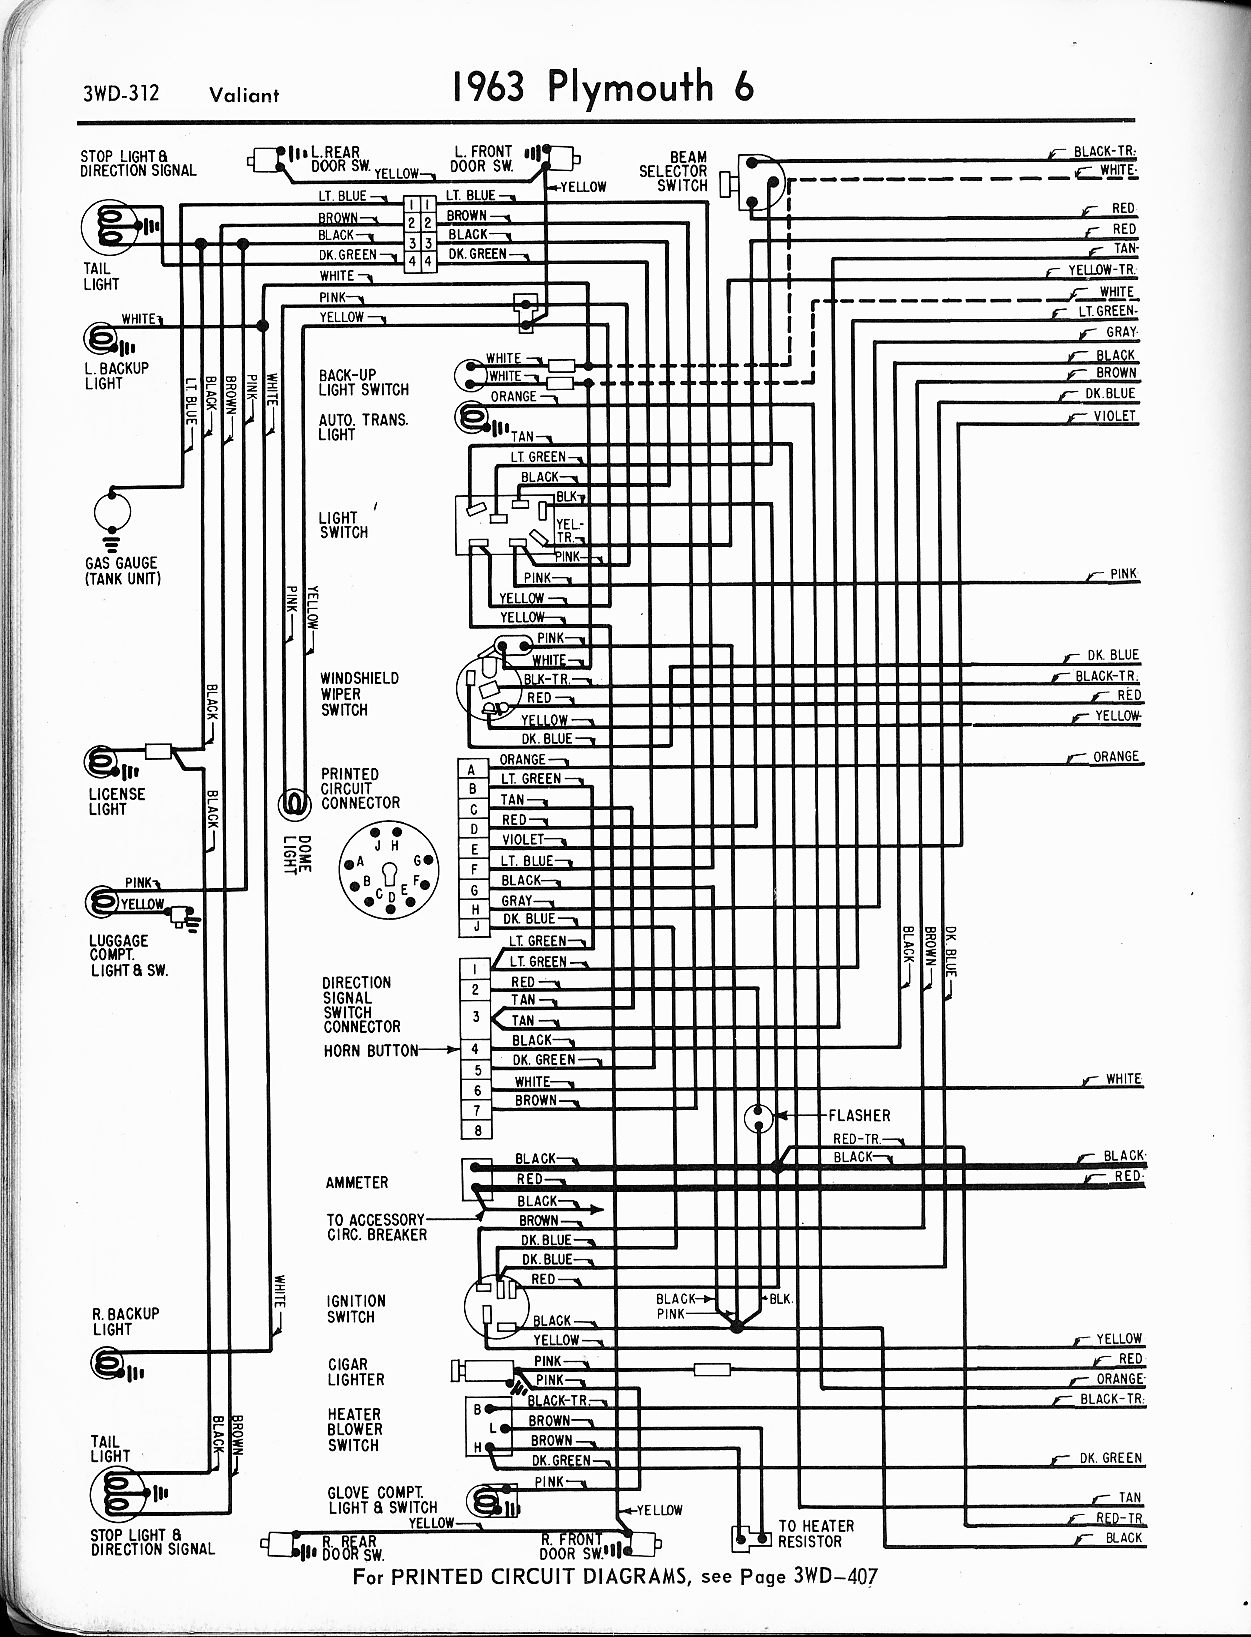 1956 1965 Plymouth Wiring The Old Car Manual Project Clic Instruments Diagrams 1963 6 Valiant Left Page